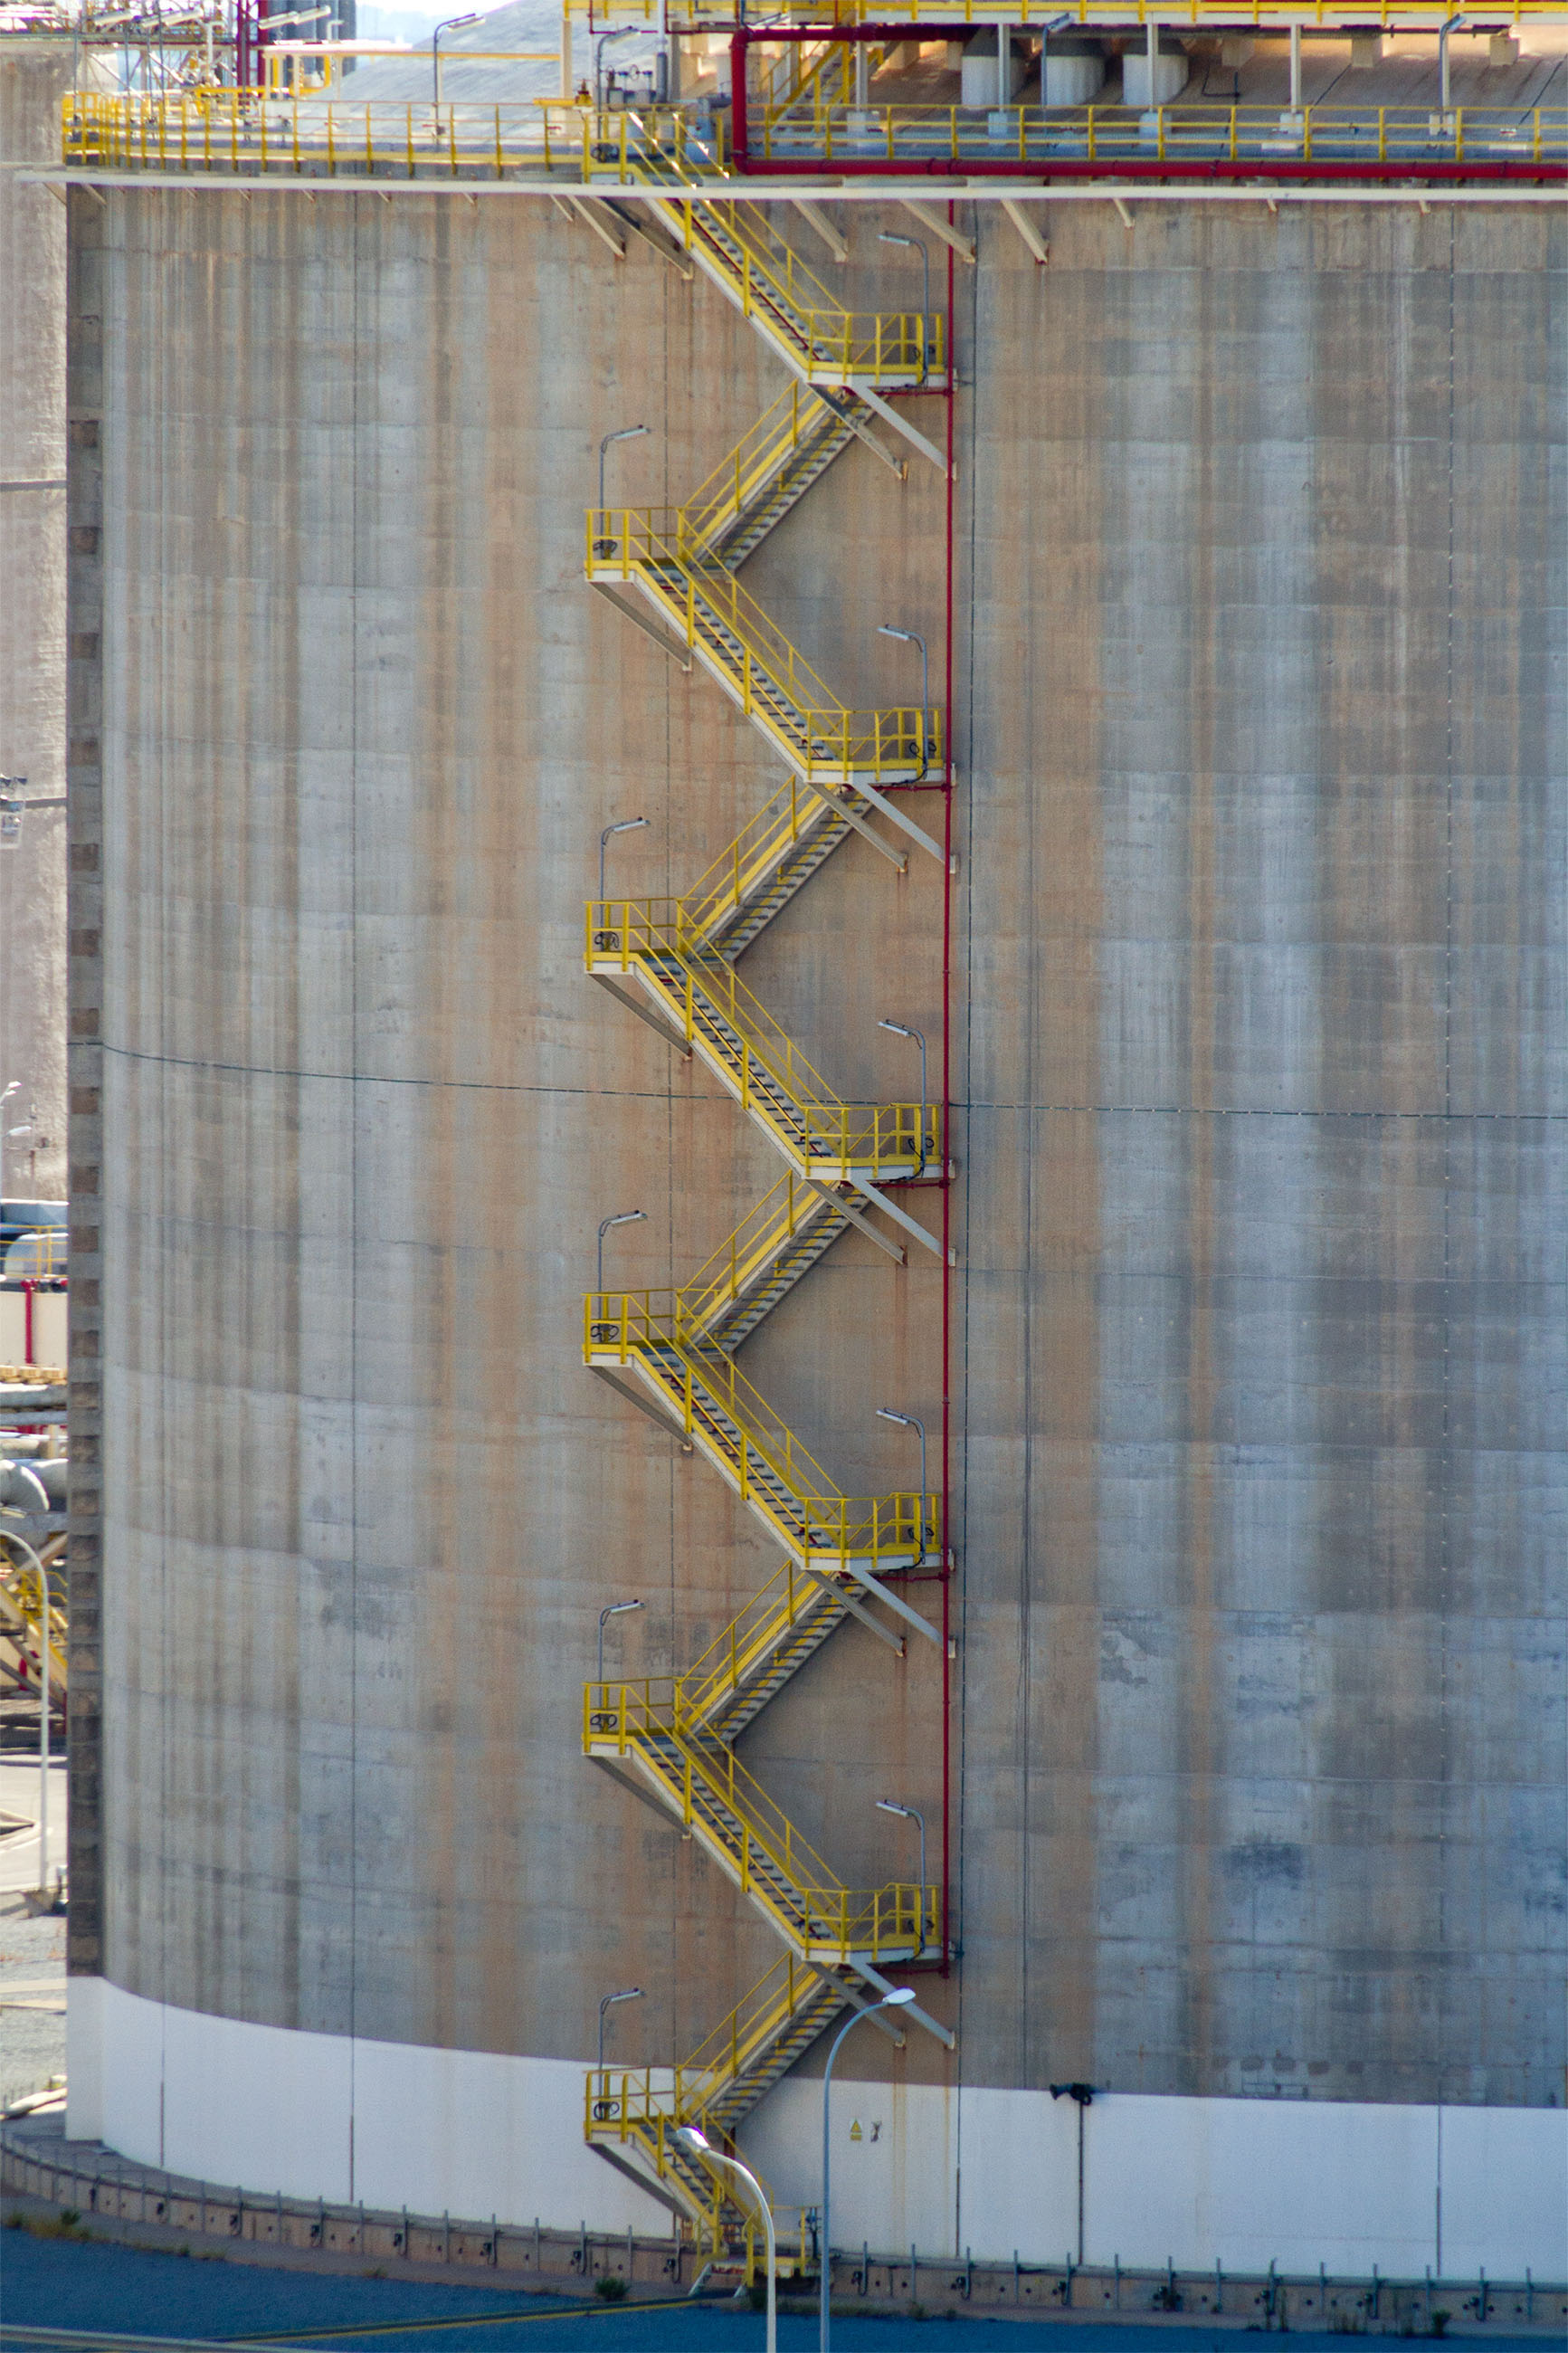 Stairs on an oil storage tank photo